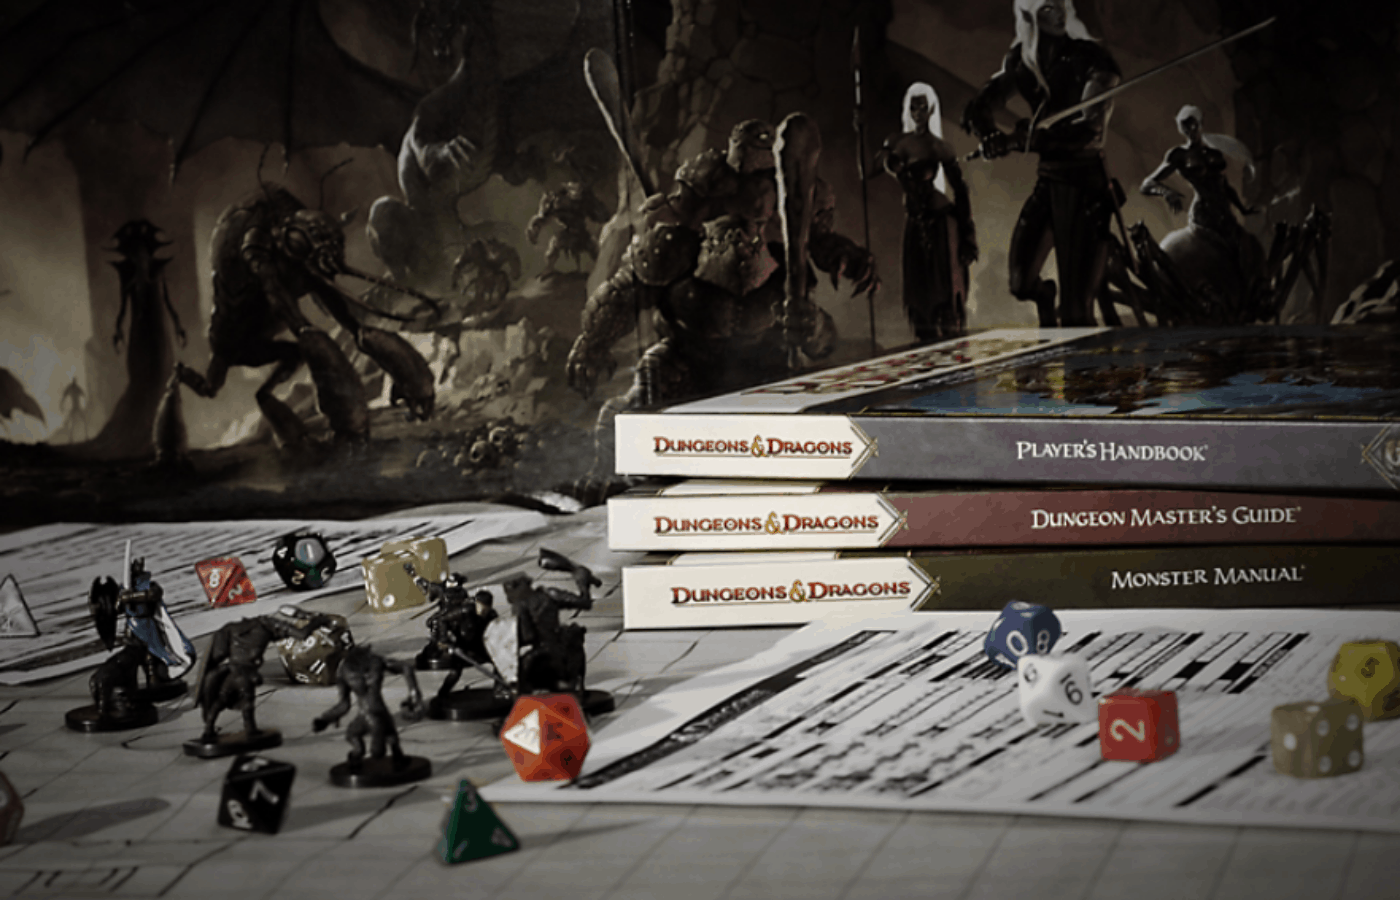 How to Find and Get a D&D Group Together